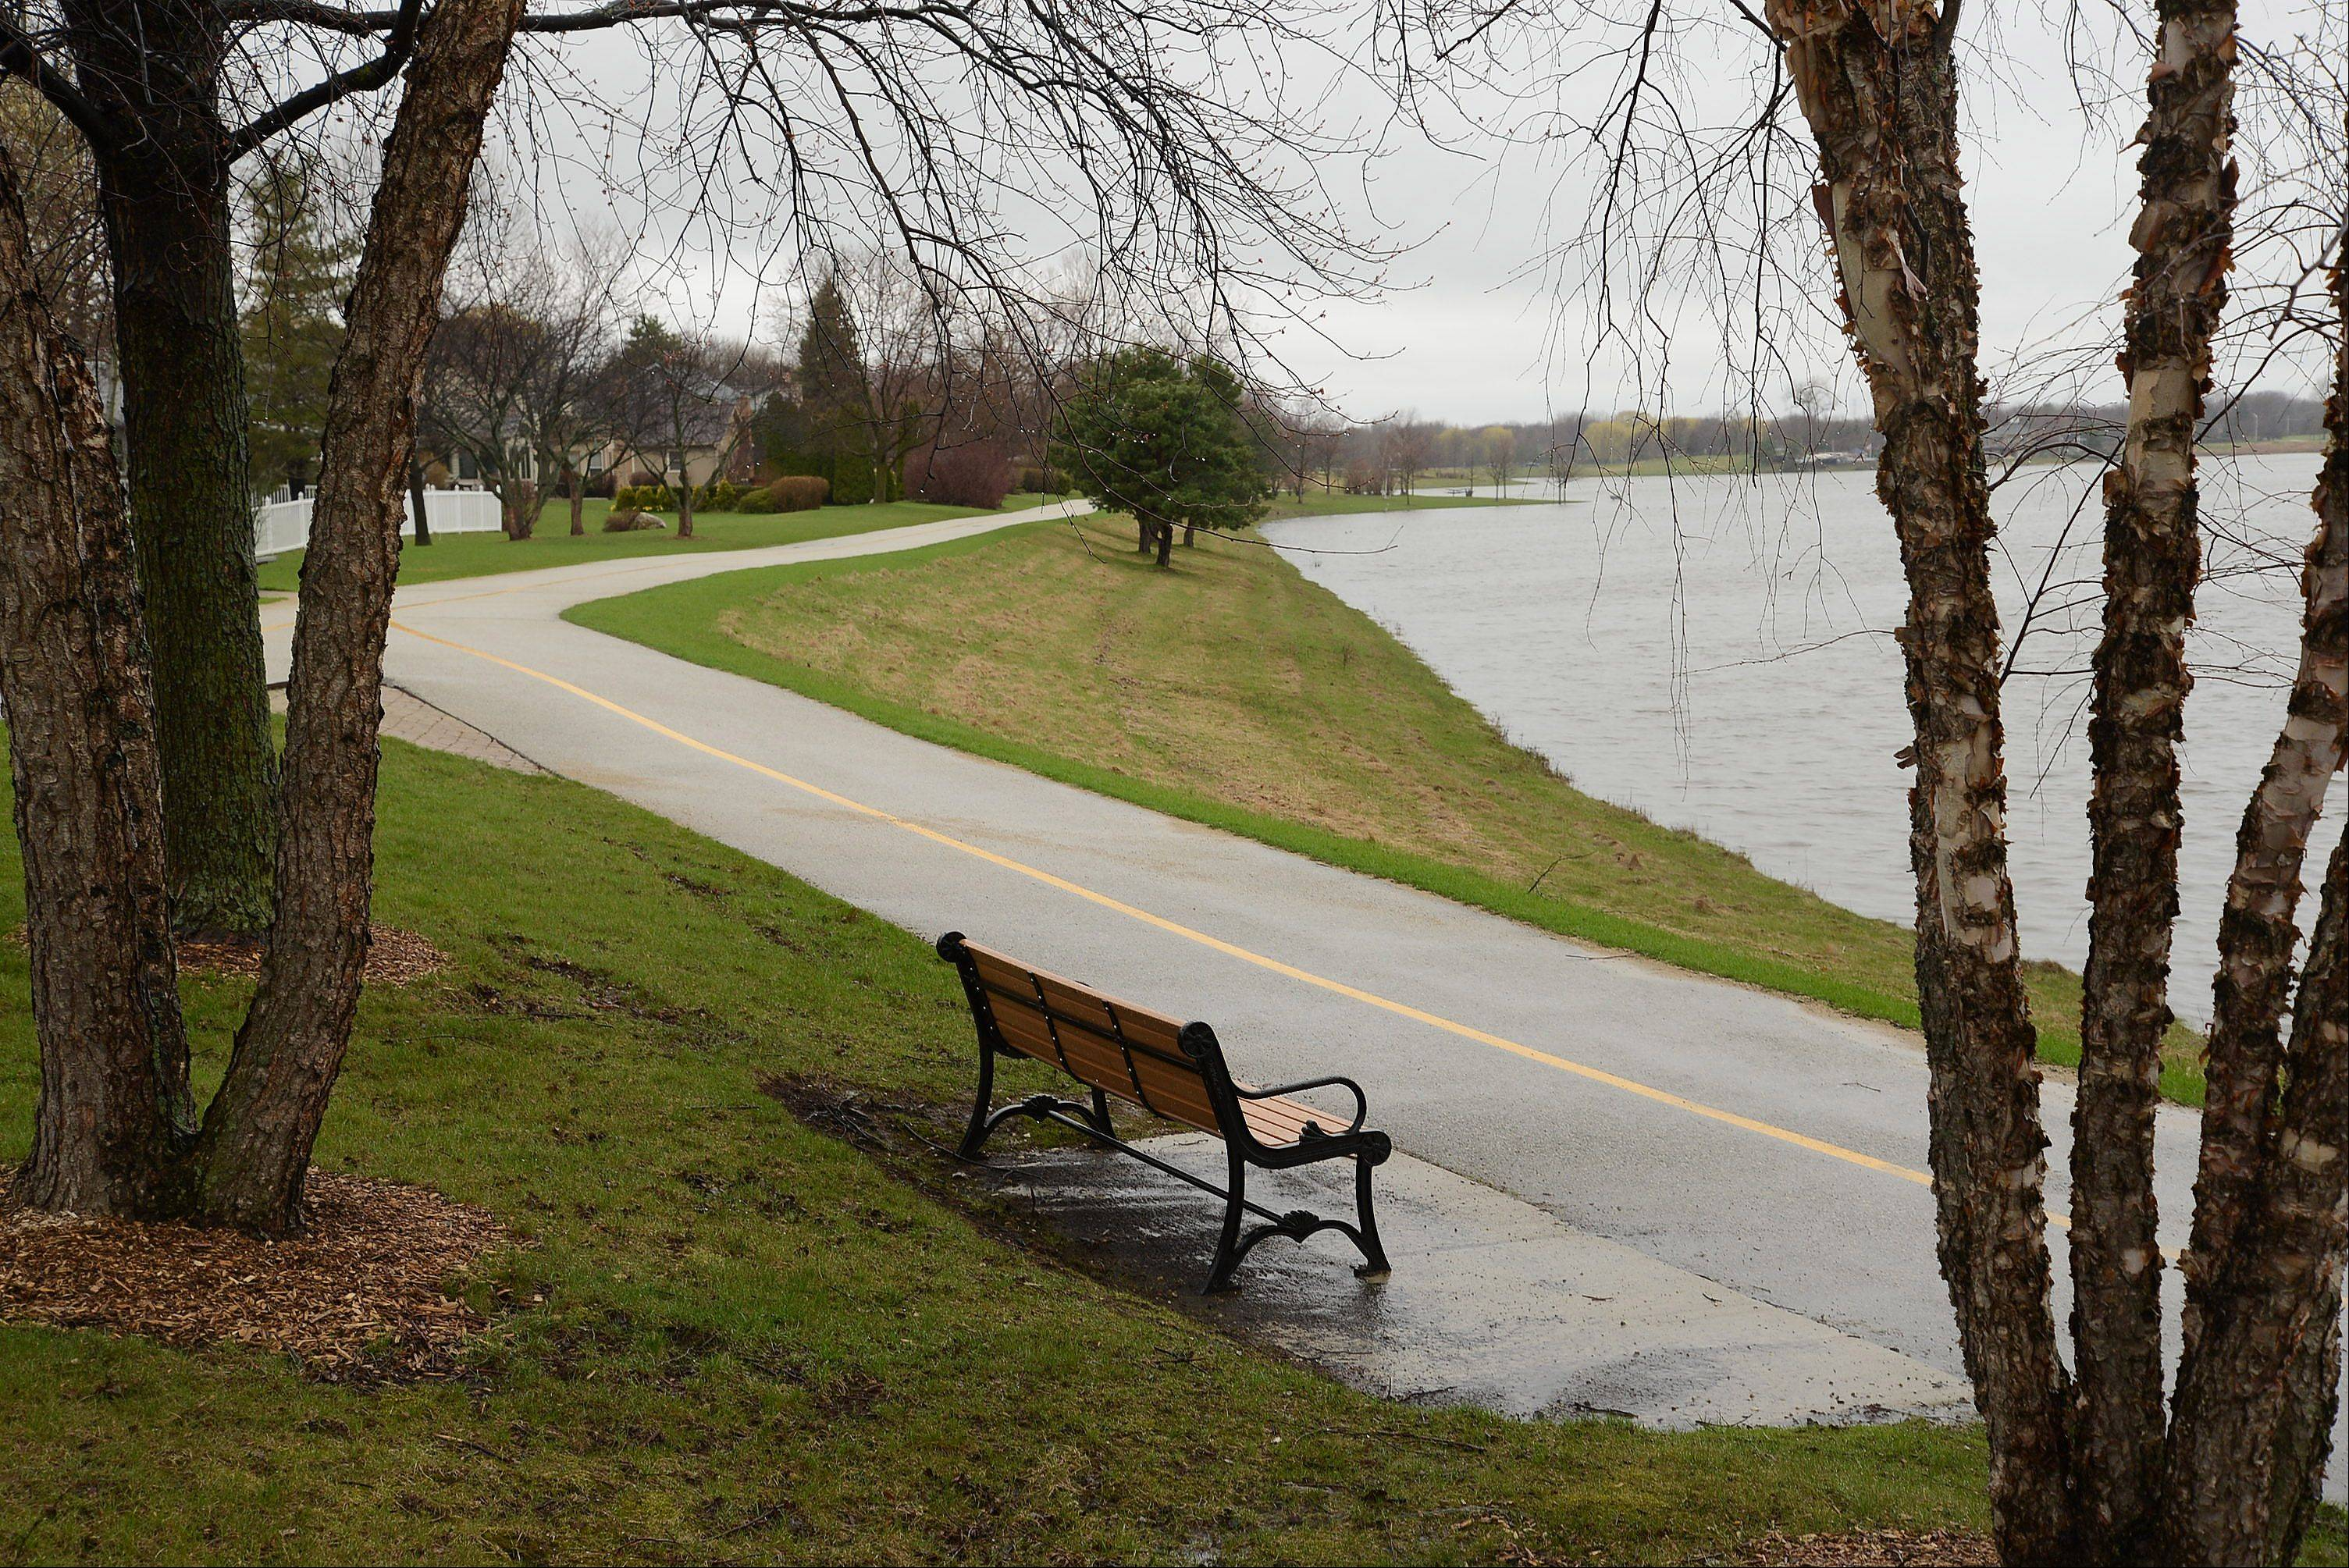 Changes planned at Lake Arlington path following death